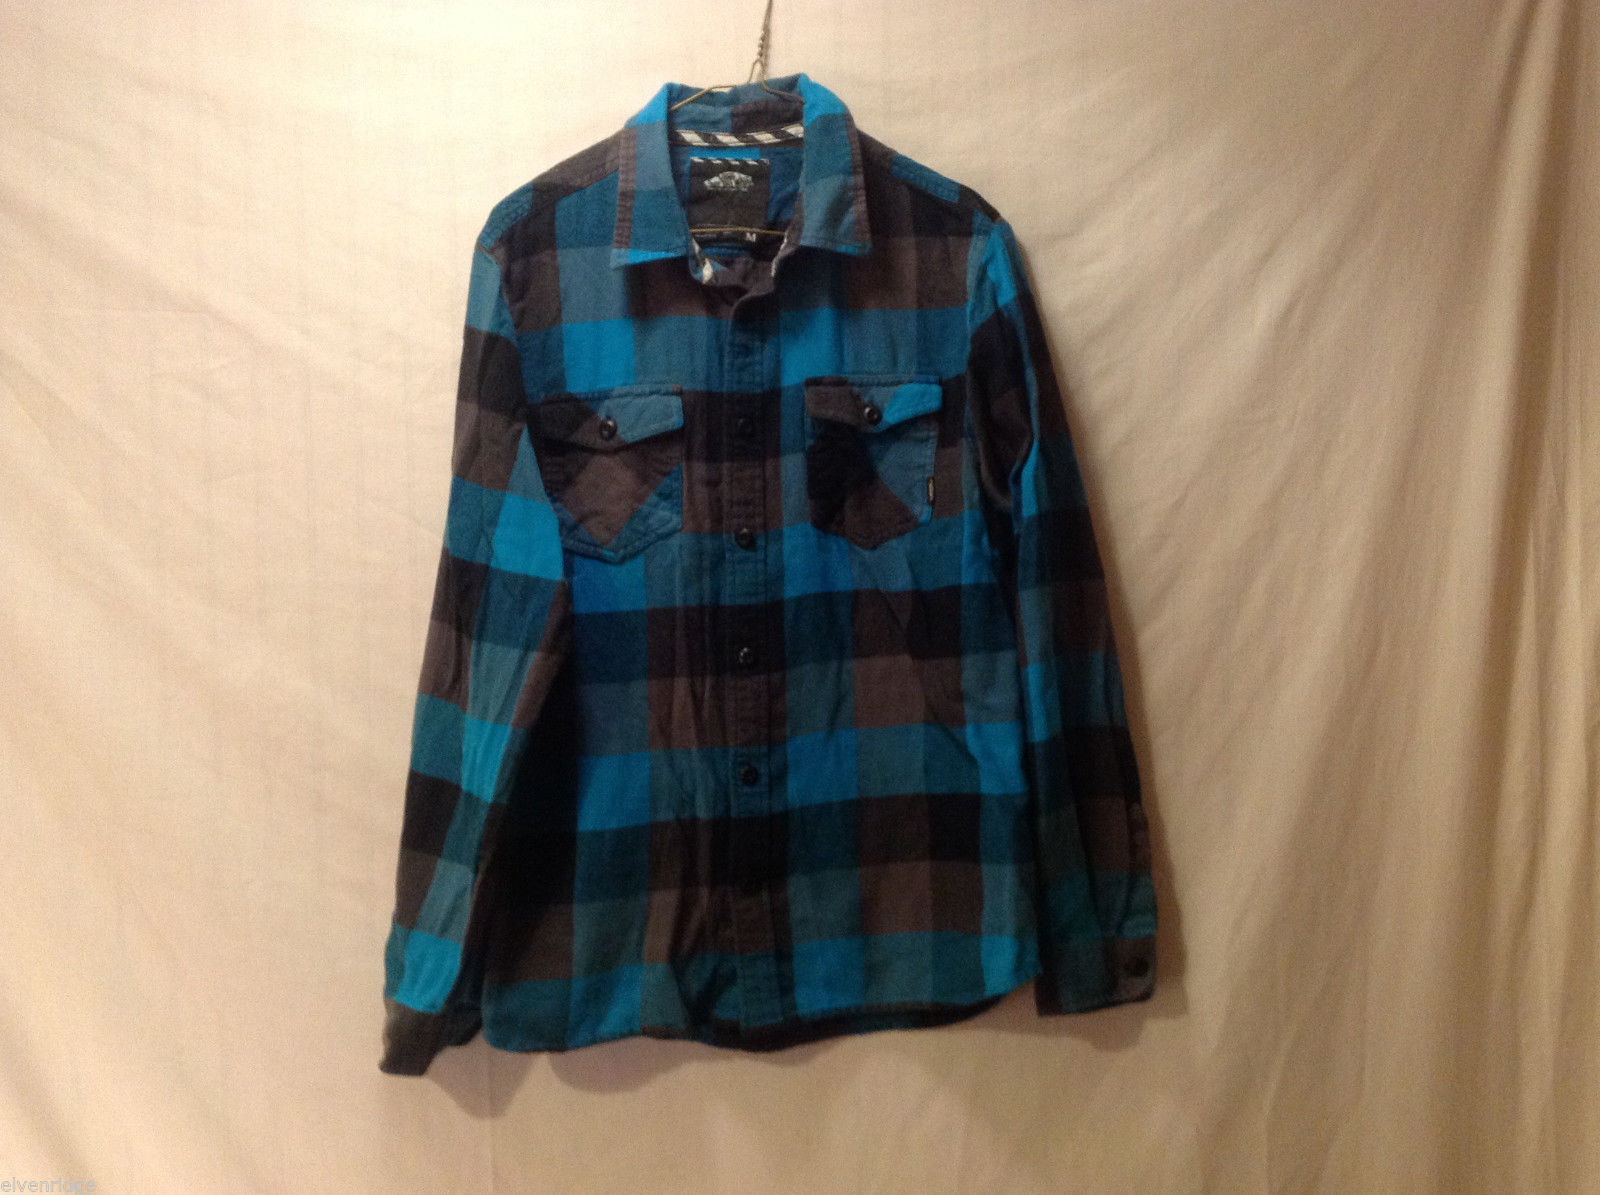 Primary image for Vans Off The Wall Size M Button-Down Shirt Buffalo Plaid Check Black Brown Blue